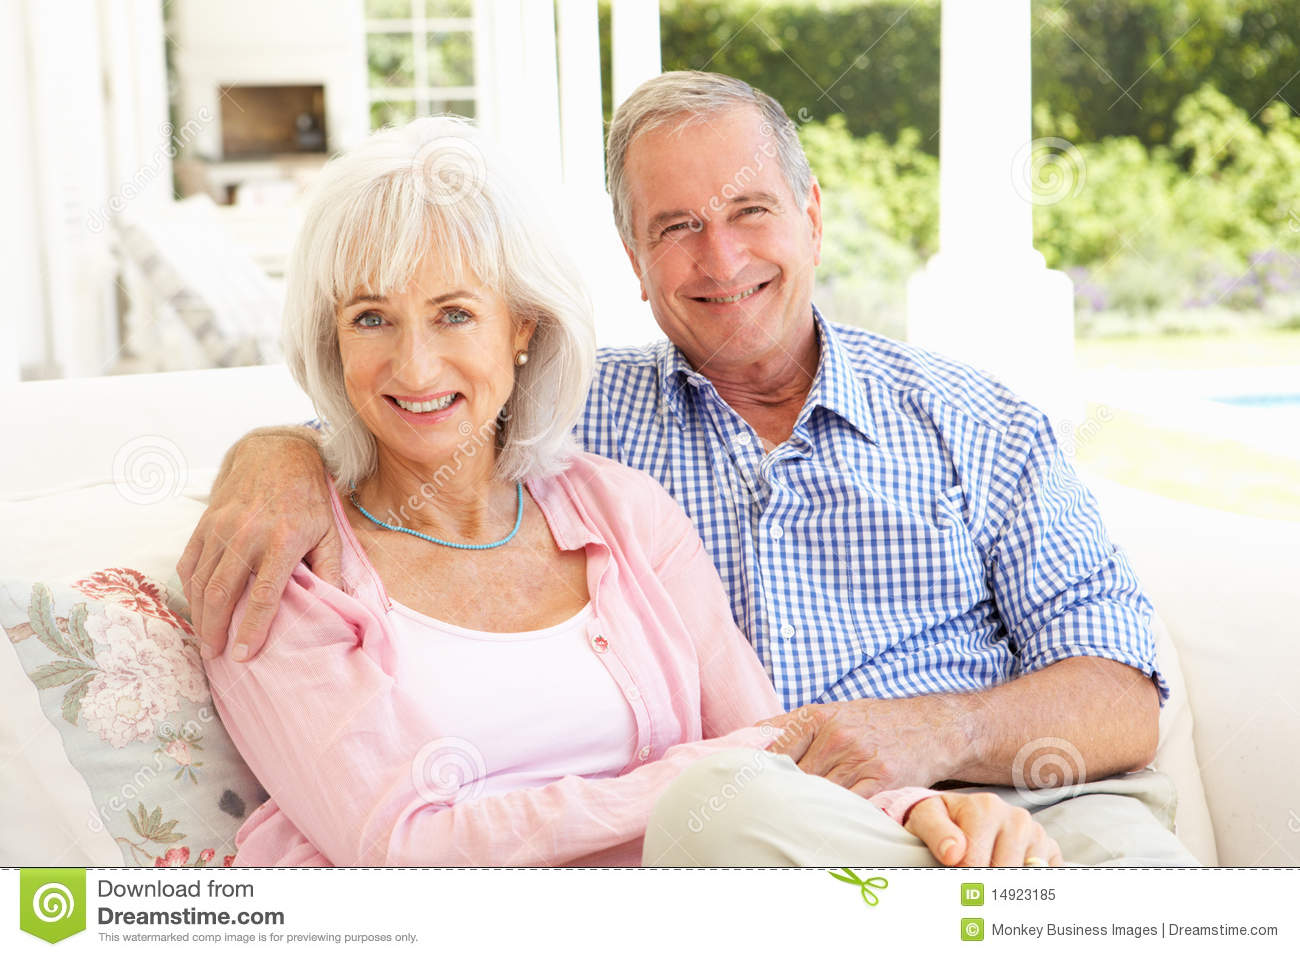 https://thumbs.dreamstime.com/z/senior-couple-relaxing-together-sofa-14923185.jpg